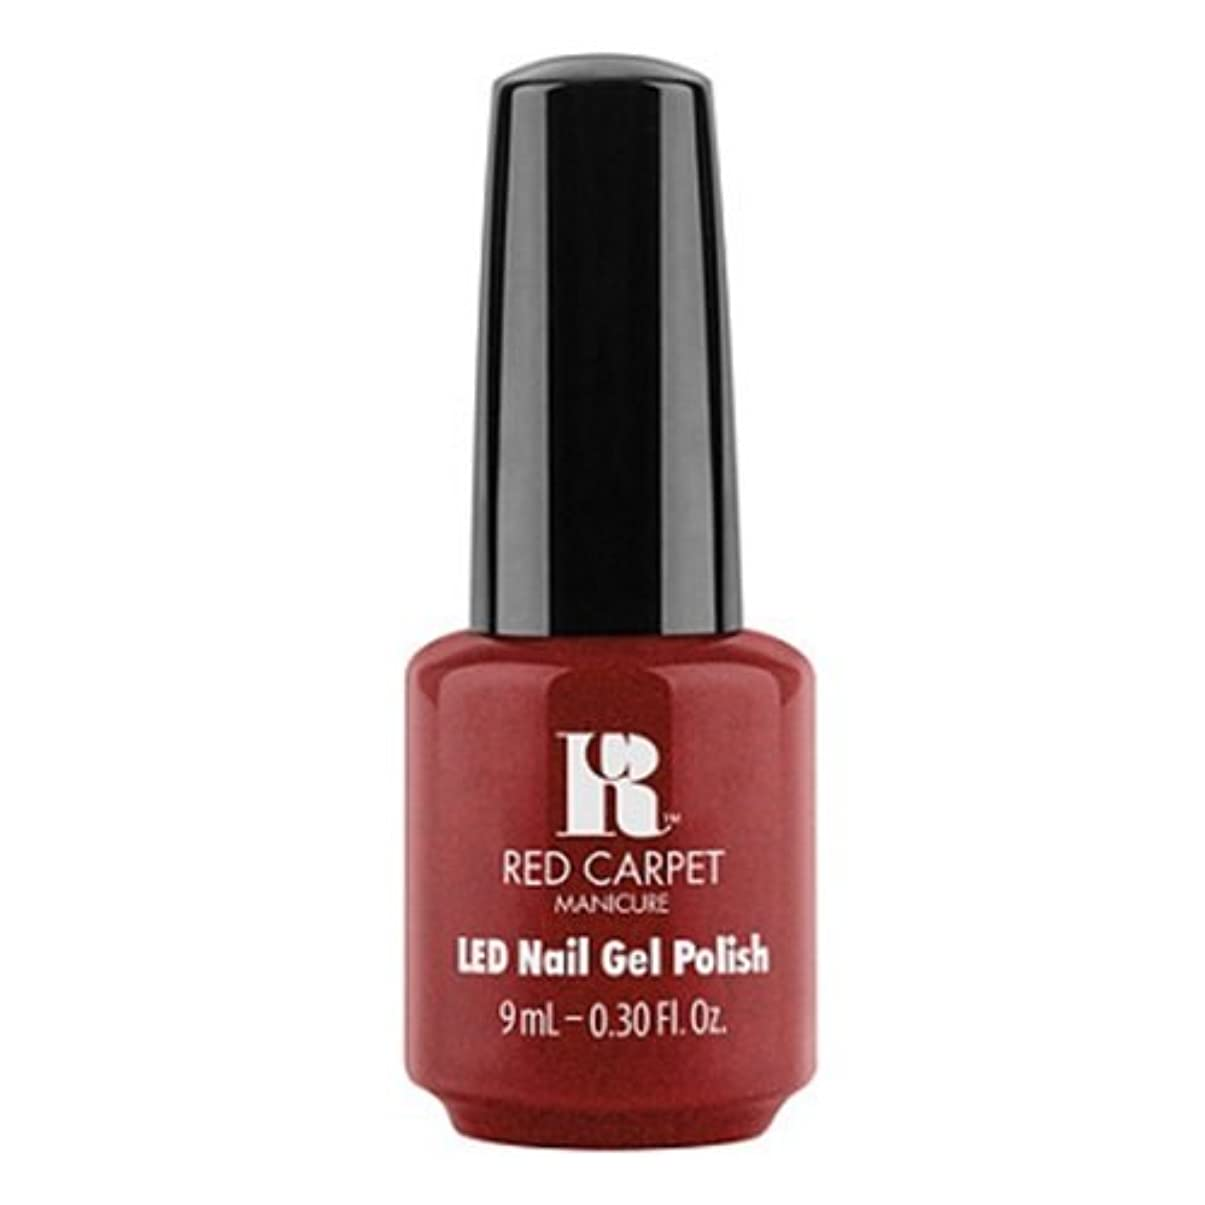 モニカ高度調和のとれたRed Carpet Manicure - LED Nail Gel Polish - Rapturous in Red - 0.3oz / 9ml